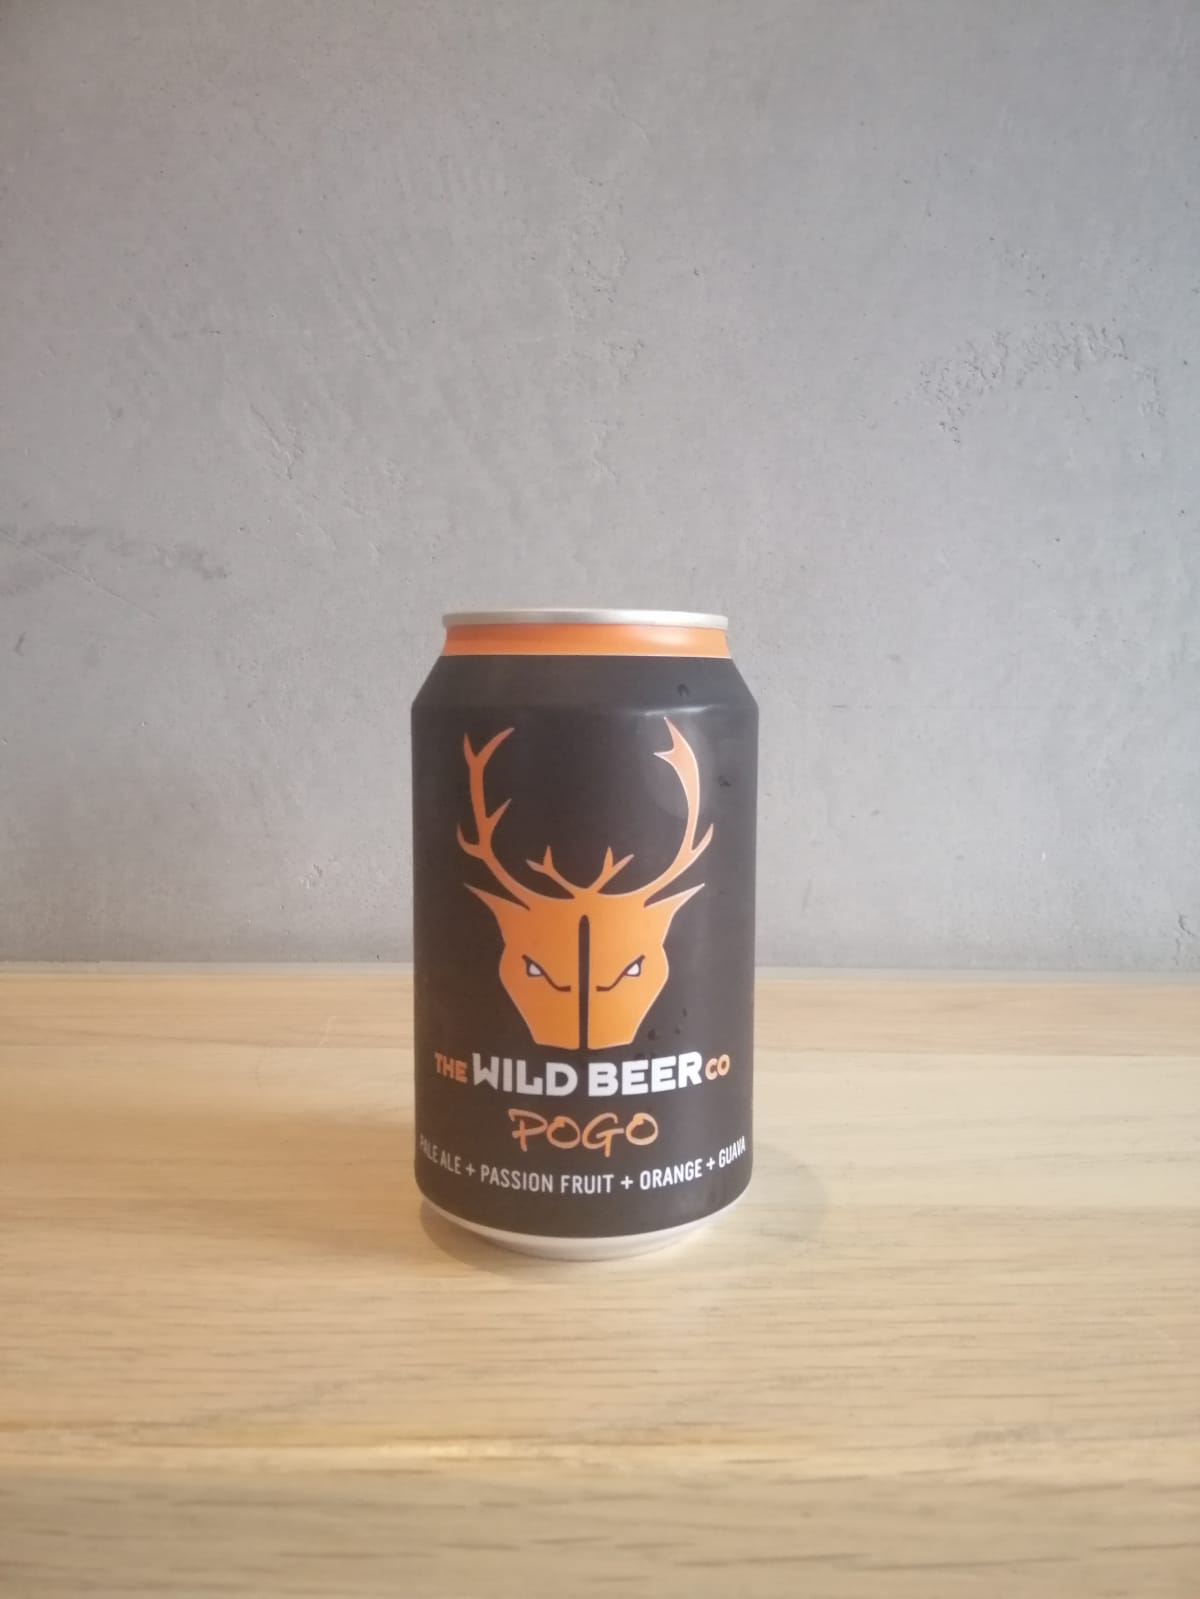 Wild beer Pogo Pale ale 4.1% 330ml